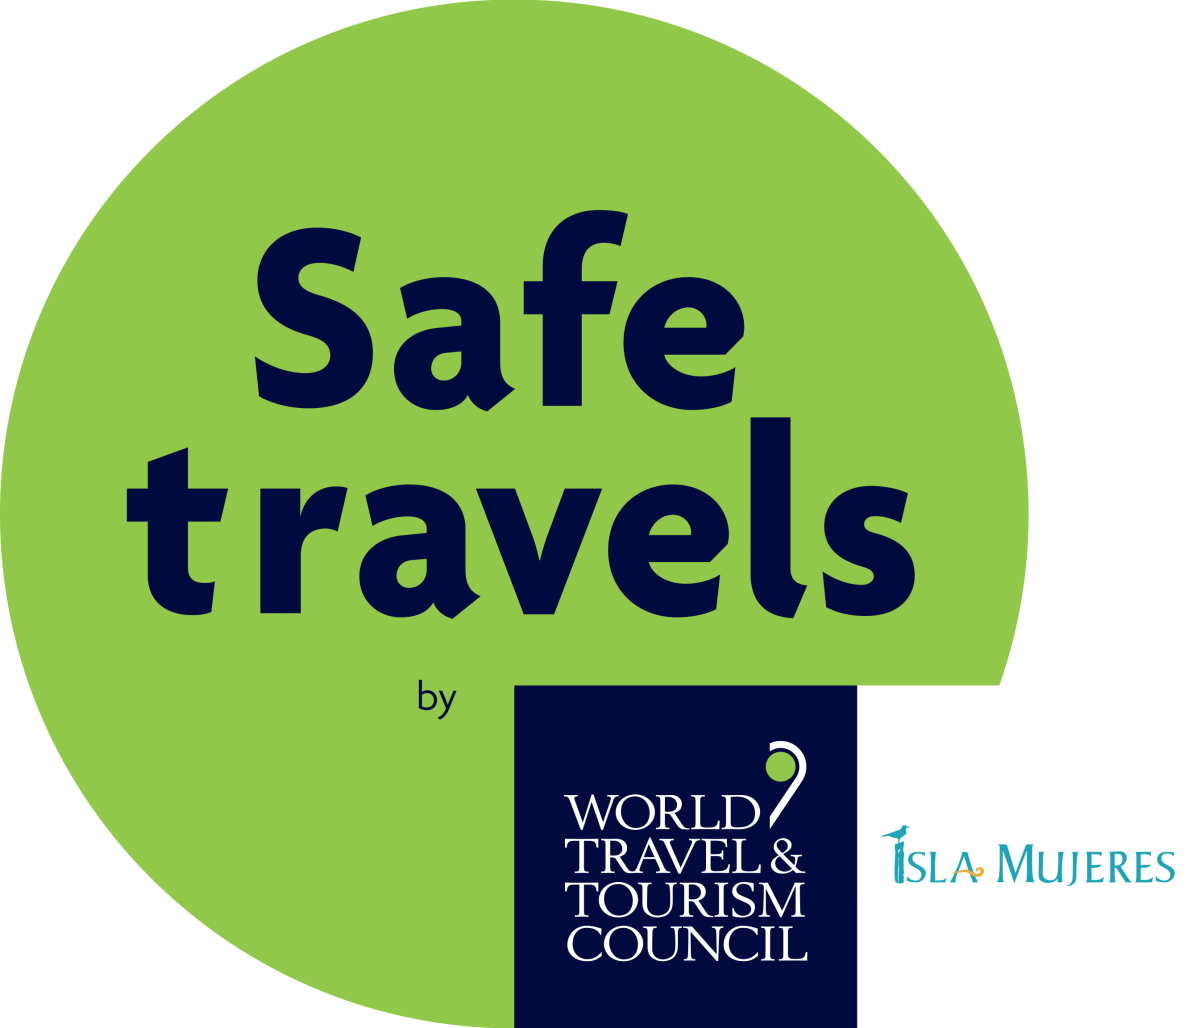 WTTC SafeTravels Stamp - Isla Mujeres